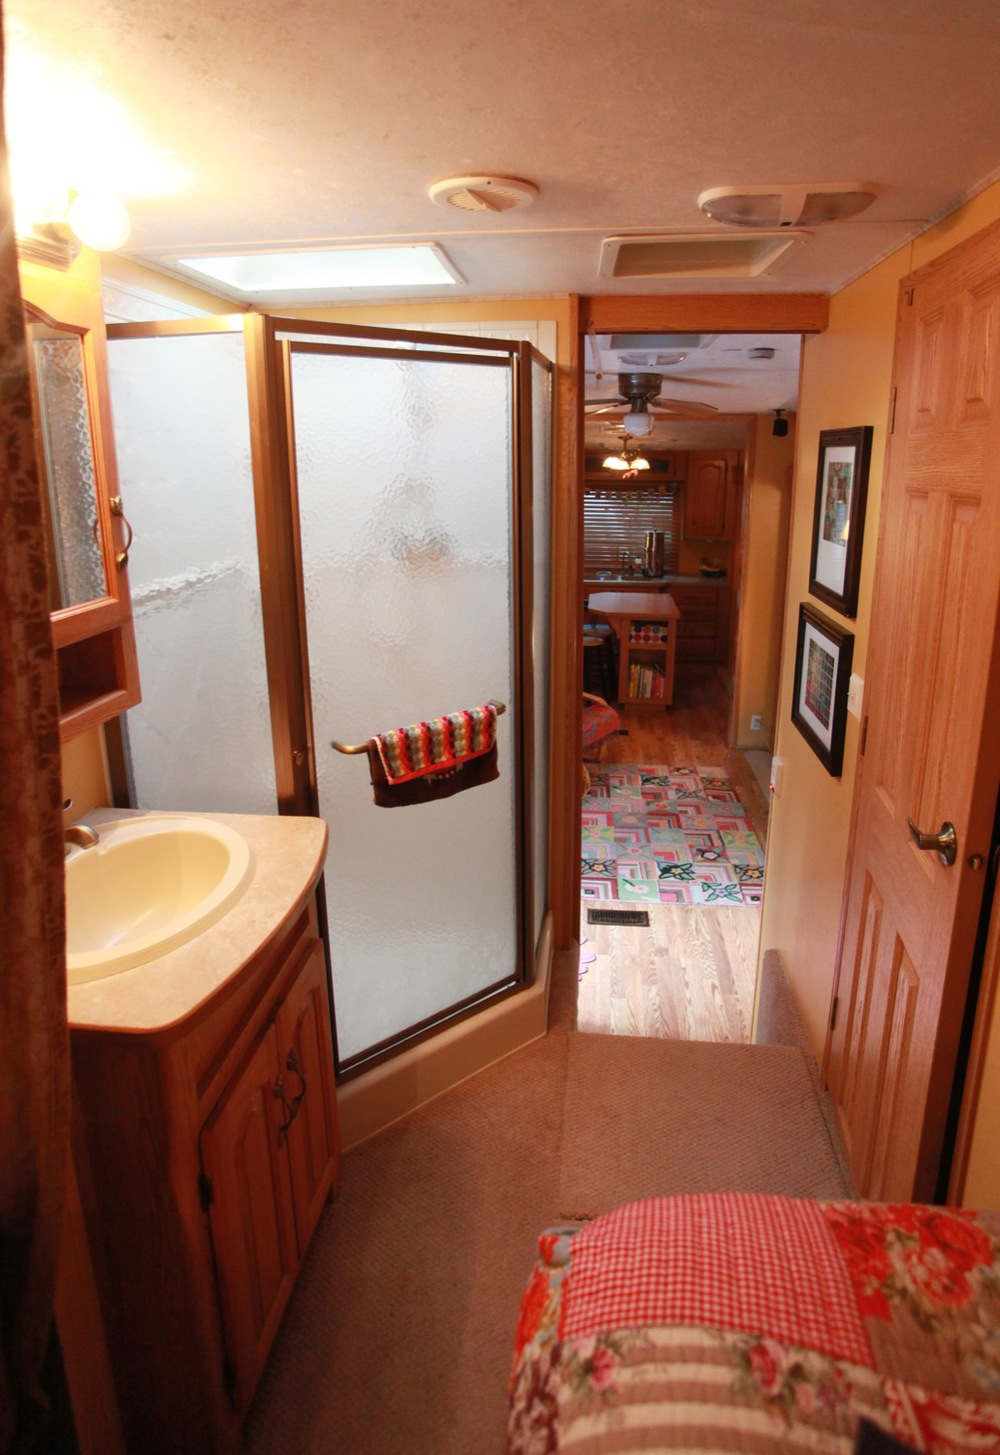 2005 Keystone Montana Fifth Wheel For Sale - Bathroom Area.jpg